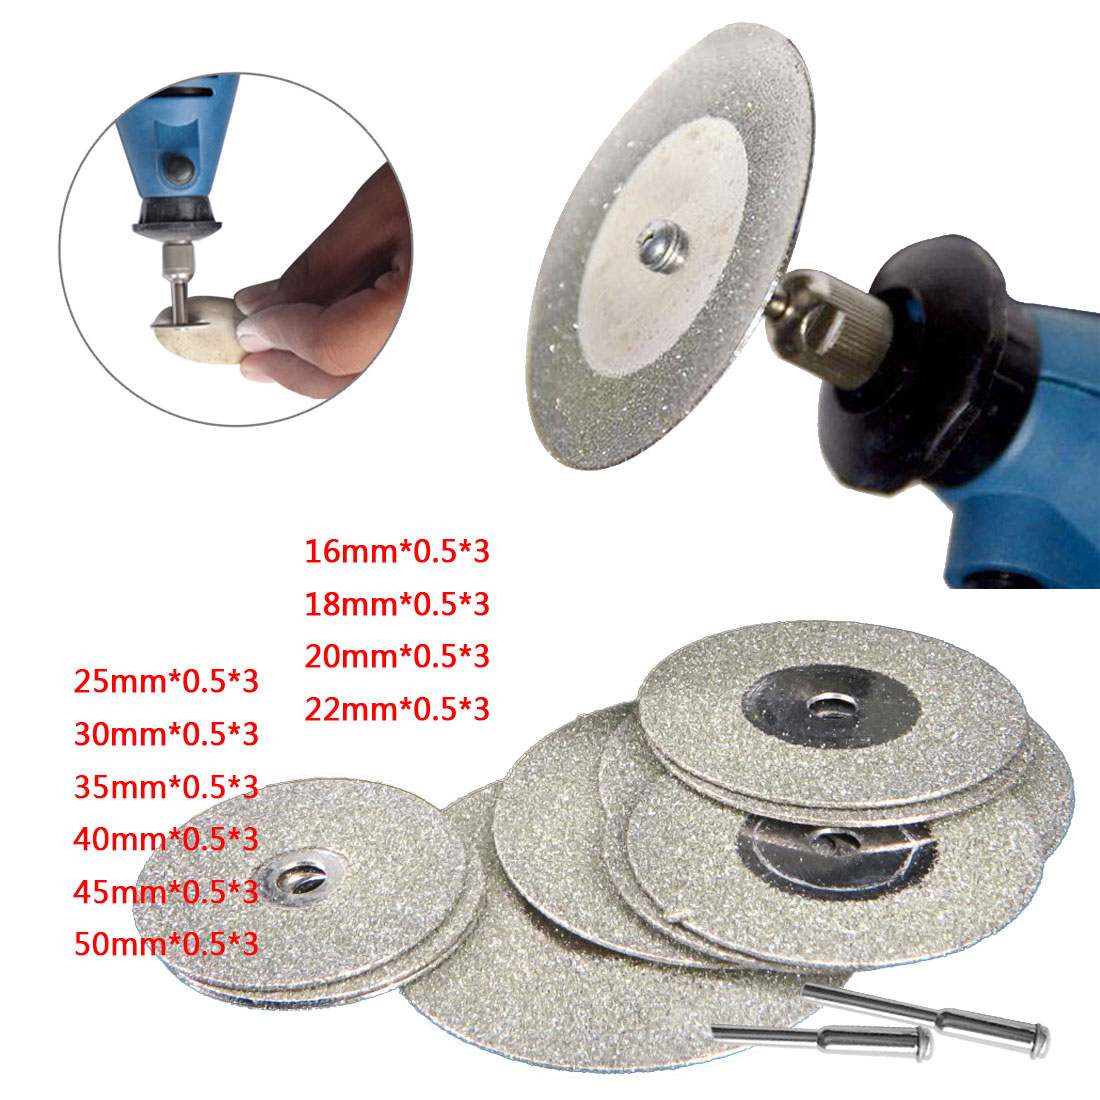 Cutting Discs Wheel 10pcs Diamond Saw Blade With 2pcs Connecting Shank For Dremel Drill Fit Rotary Accessories Tool OD 16mm-50mm